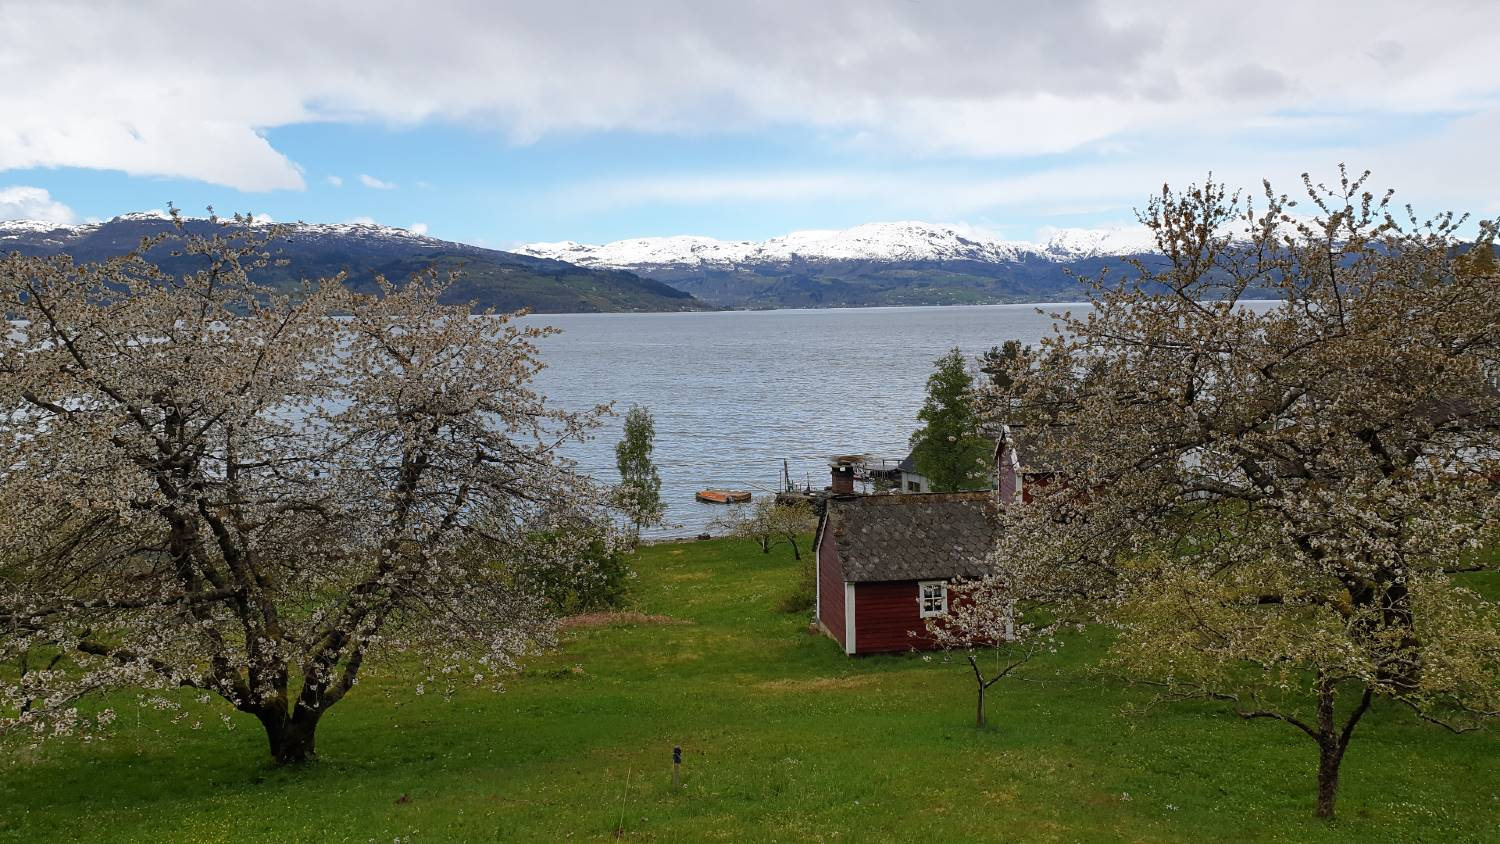 Road trip from Bergen to Hardanger - Norway's orchard